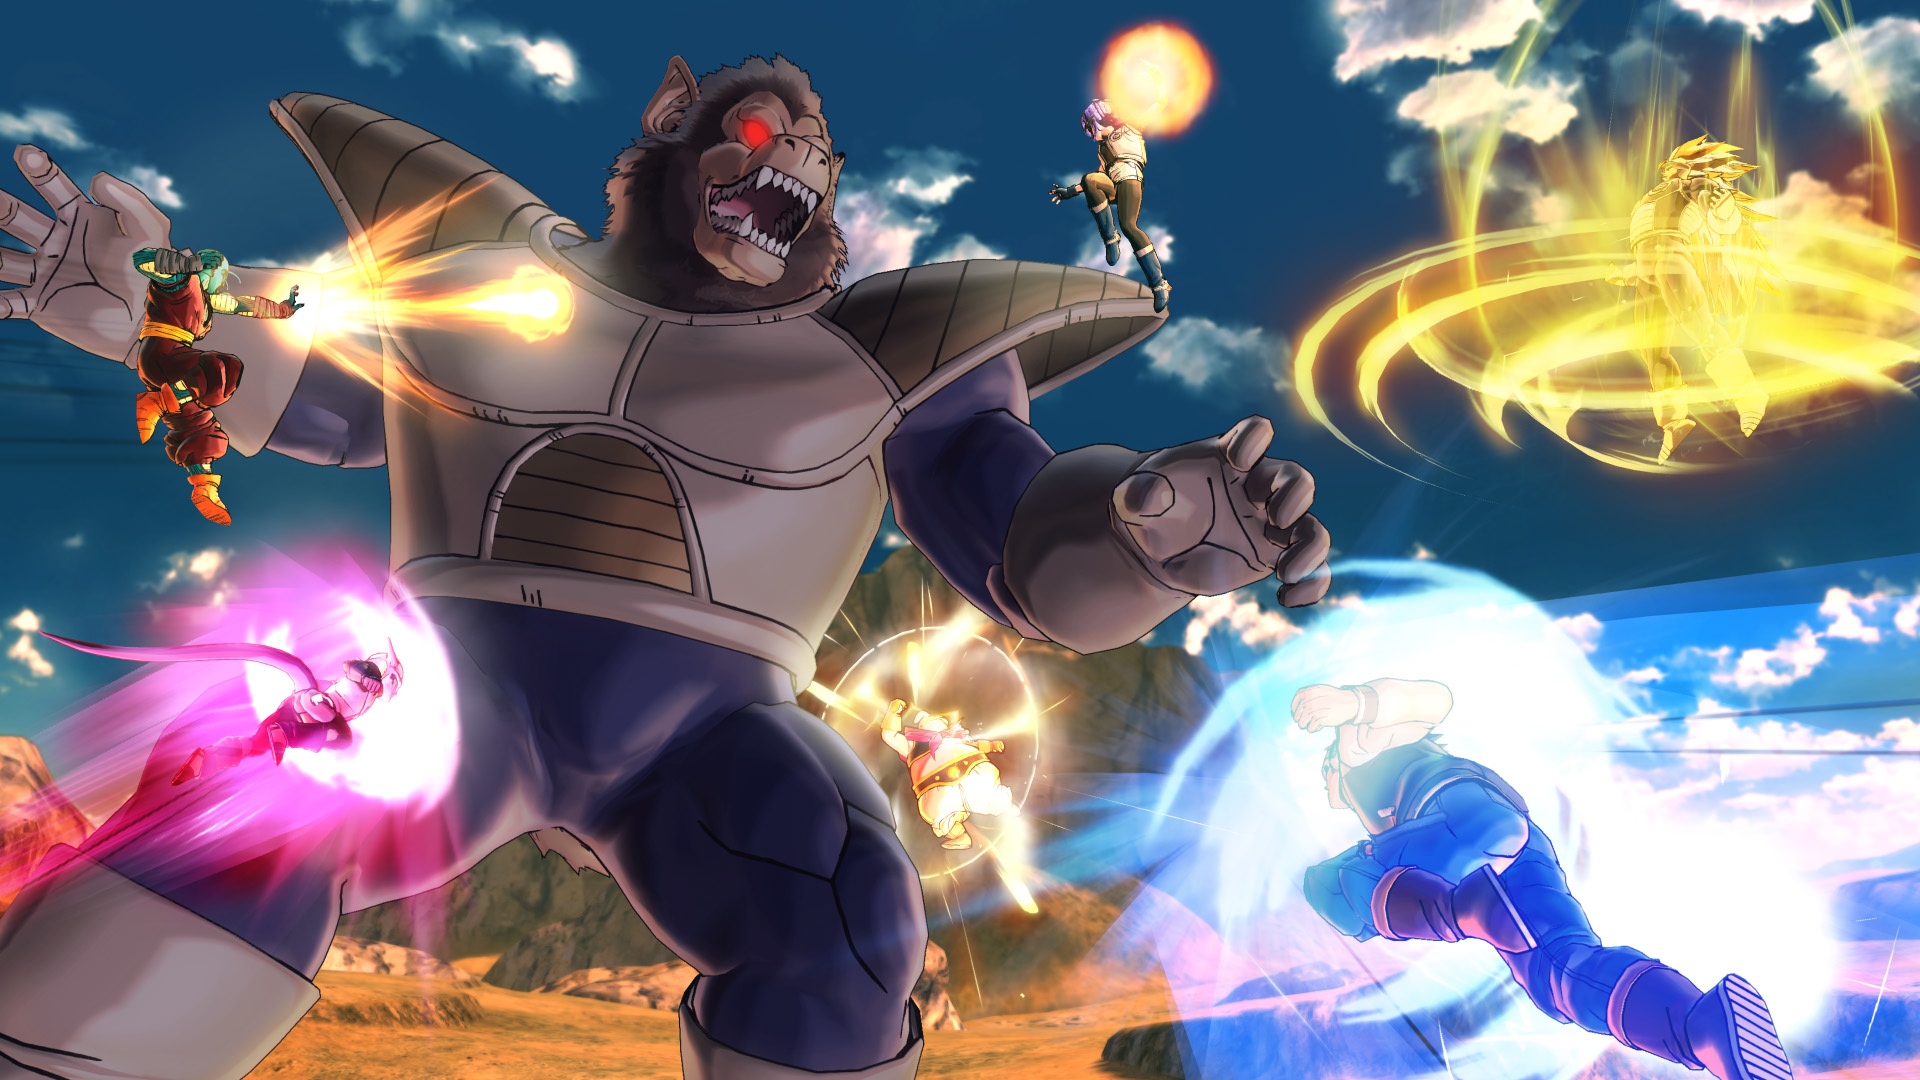 dragon-ball-xenoverse-2-ps4-inceleme-2